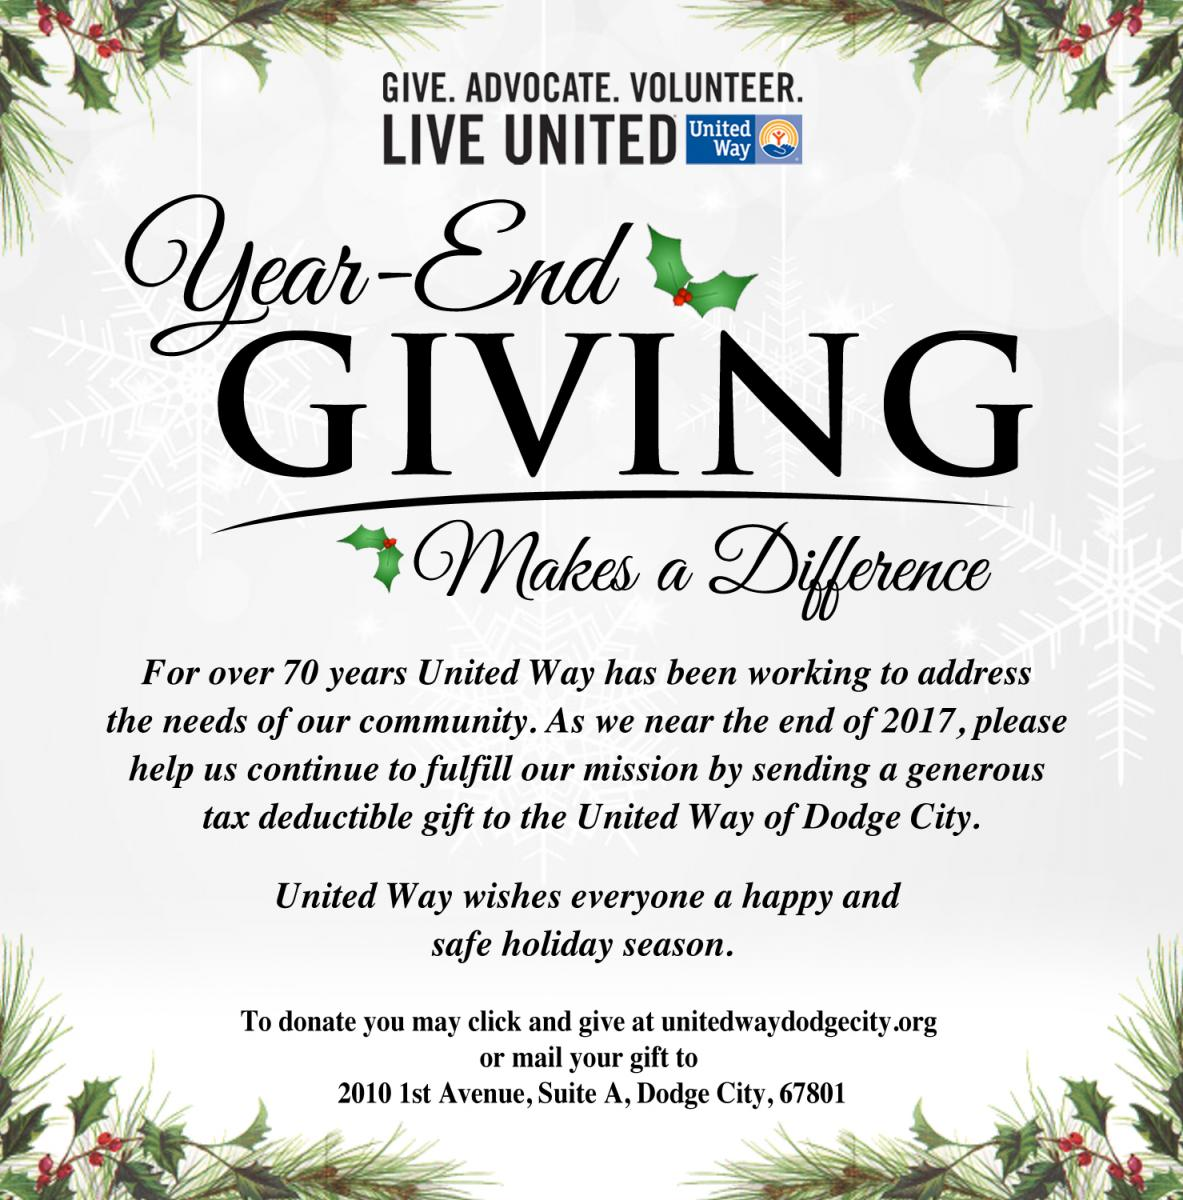 Year-End Giving | United Way of Dodge City